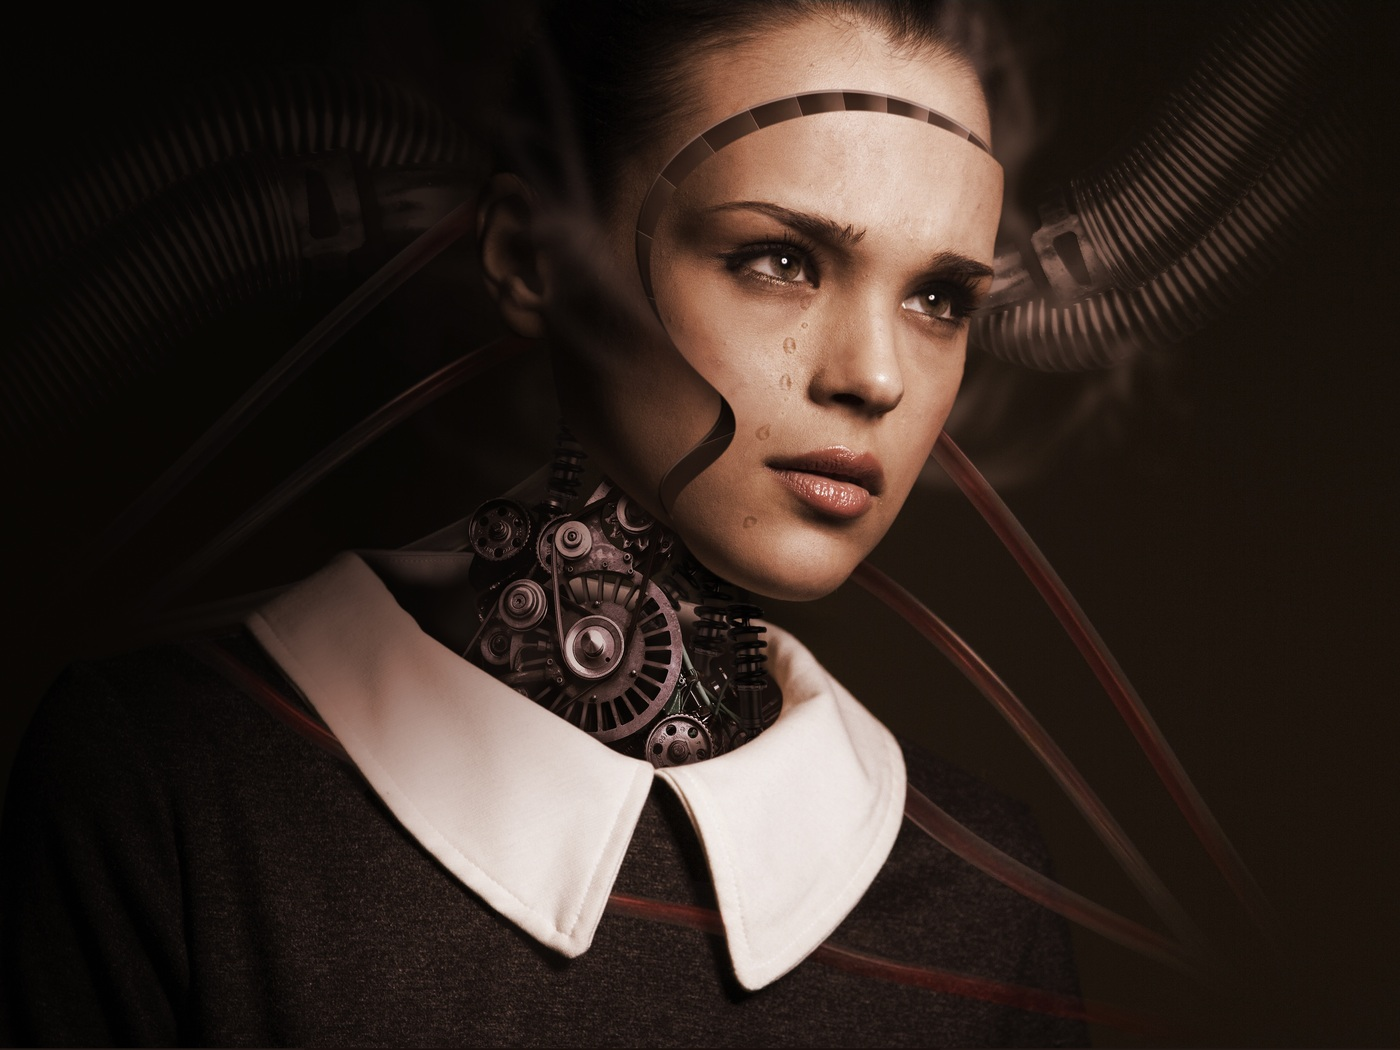 robot-woman-artificial-intelligence-technology-robotics-girl-hr.jpg